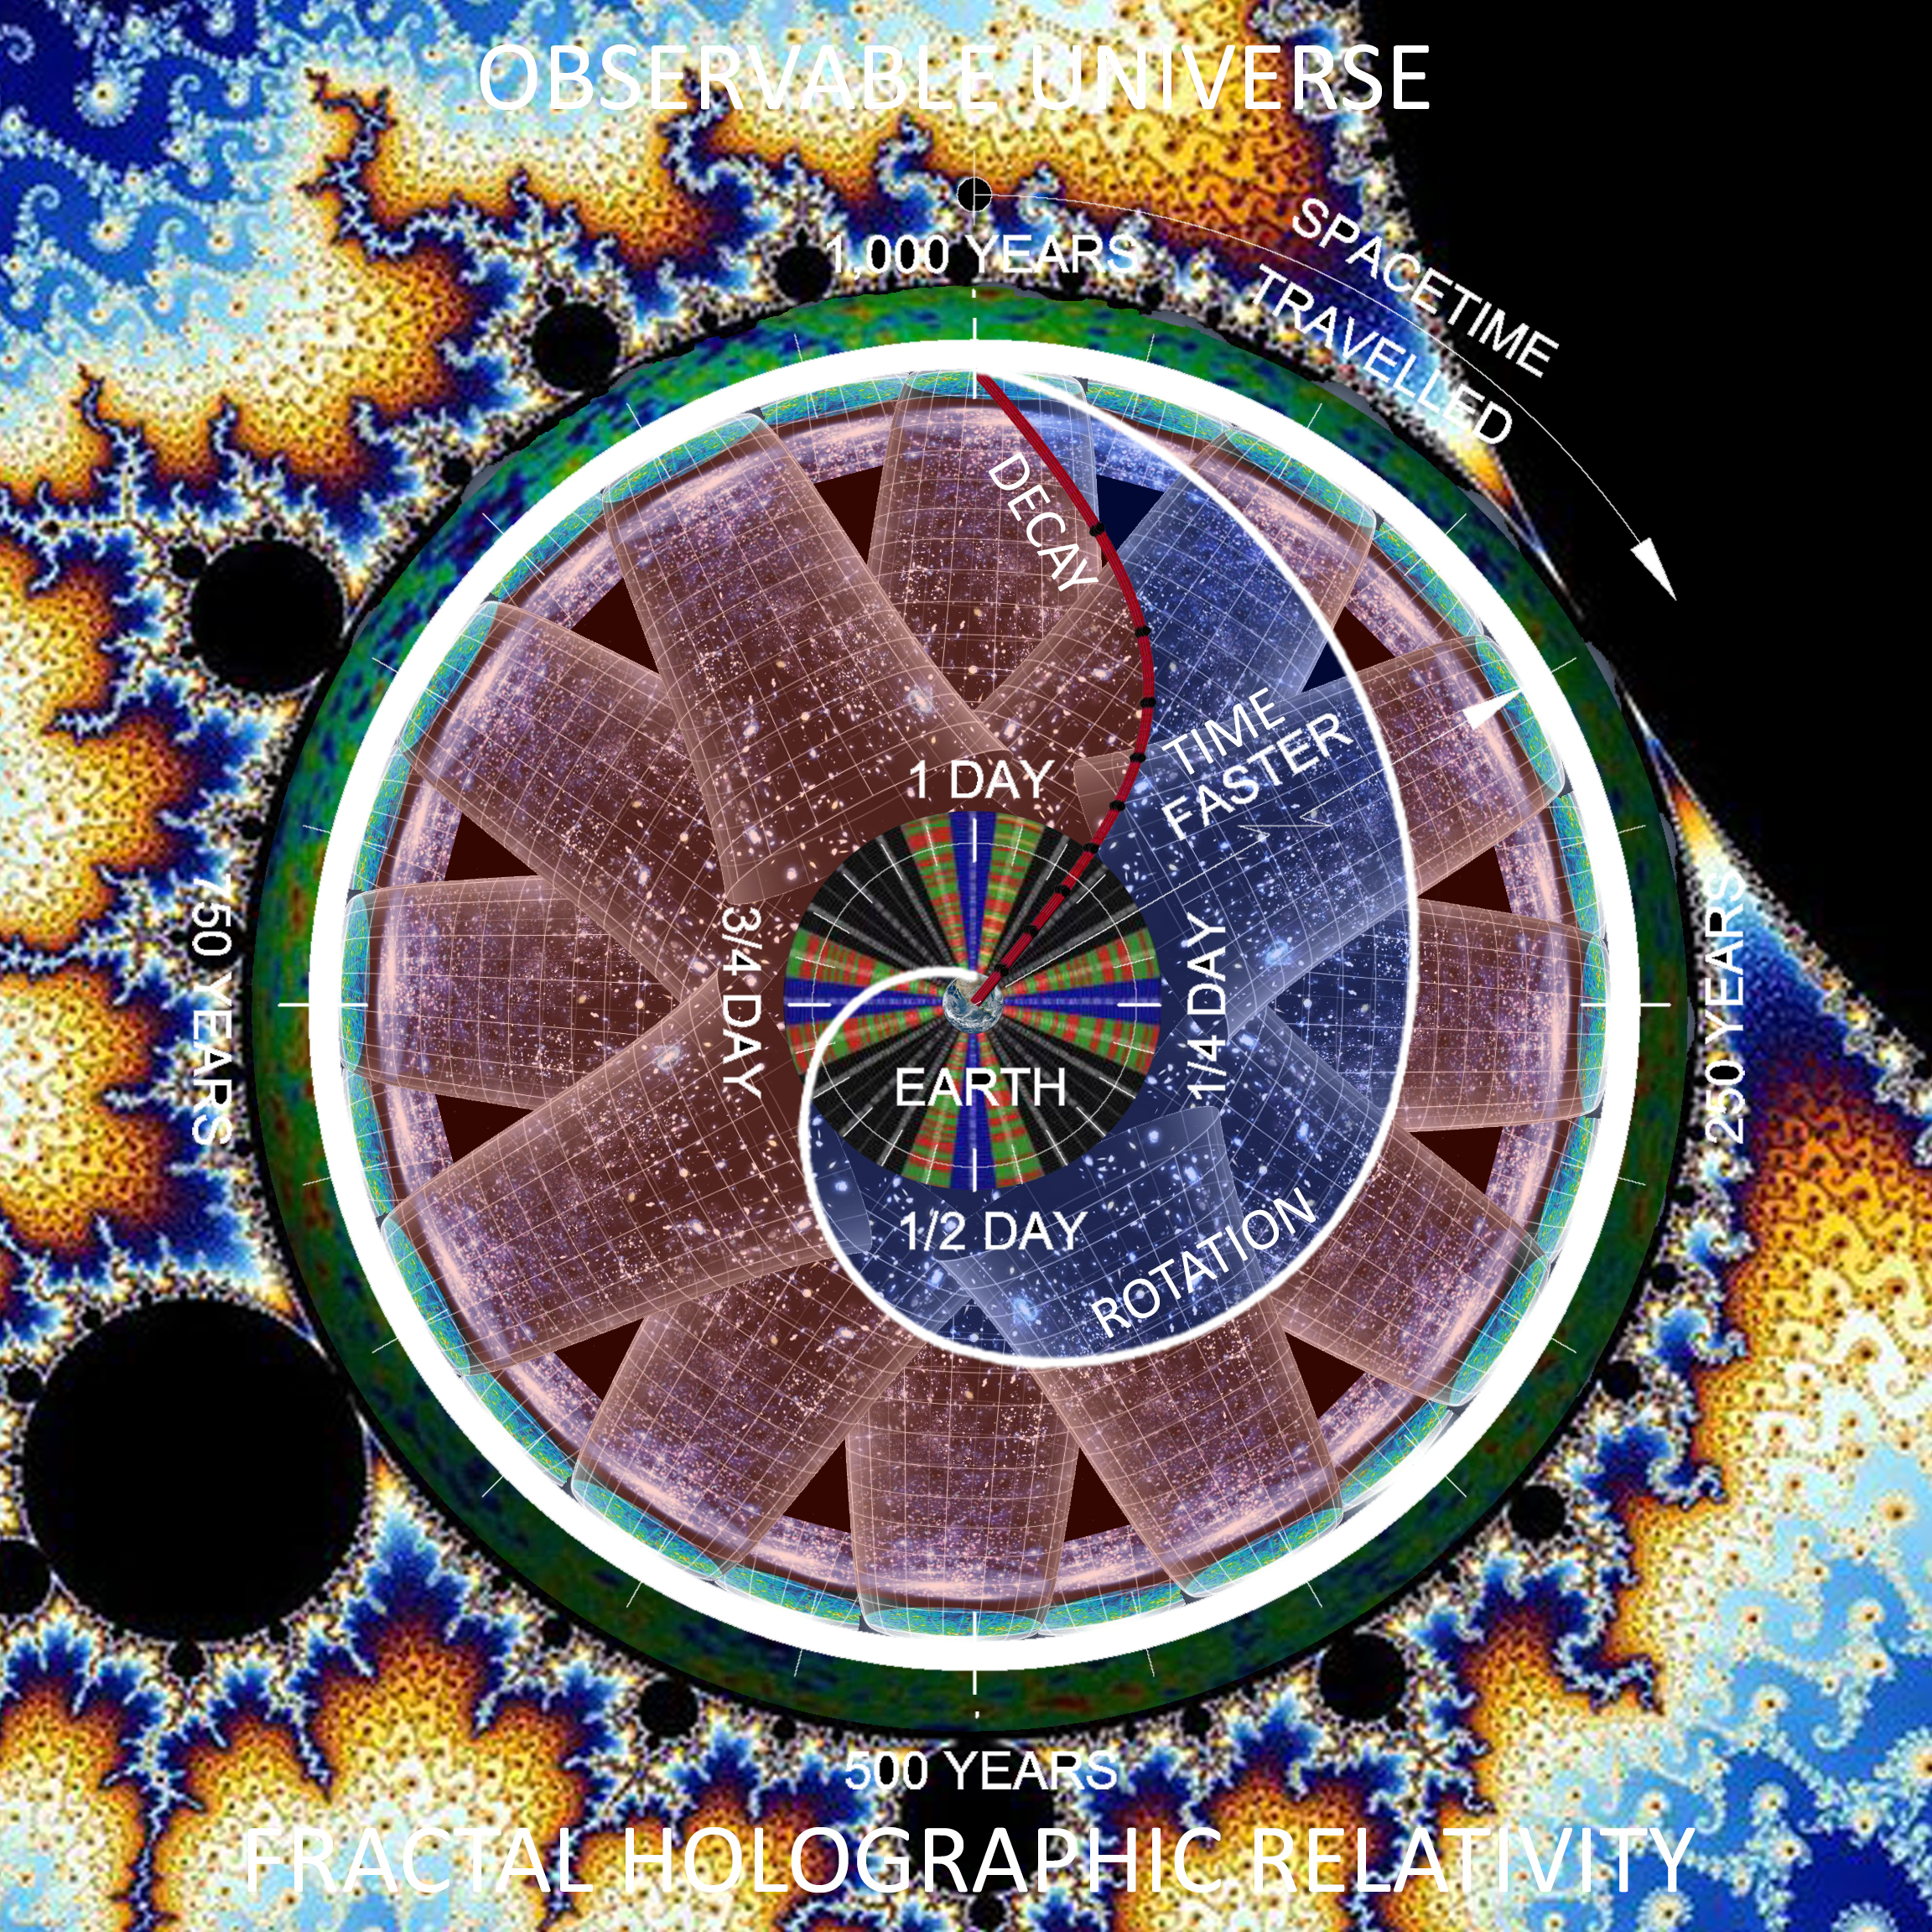 #BigBang #CMB #HorizonProblem #Mandalas #CosmicMicrowaveBackground #Boundary of #ObservableUniverse is #EvenlyDistributed #InEveryDirection #AboveEarth as #WMAP #PreciselyMeasured, and the #AxisOfEvolve is #PerfectlyAligned with #SolarEclipticPlane #AboutEarth.